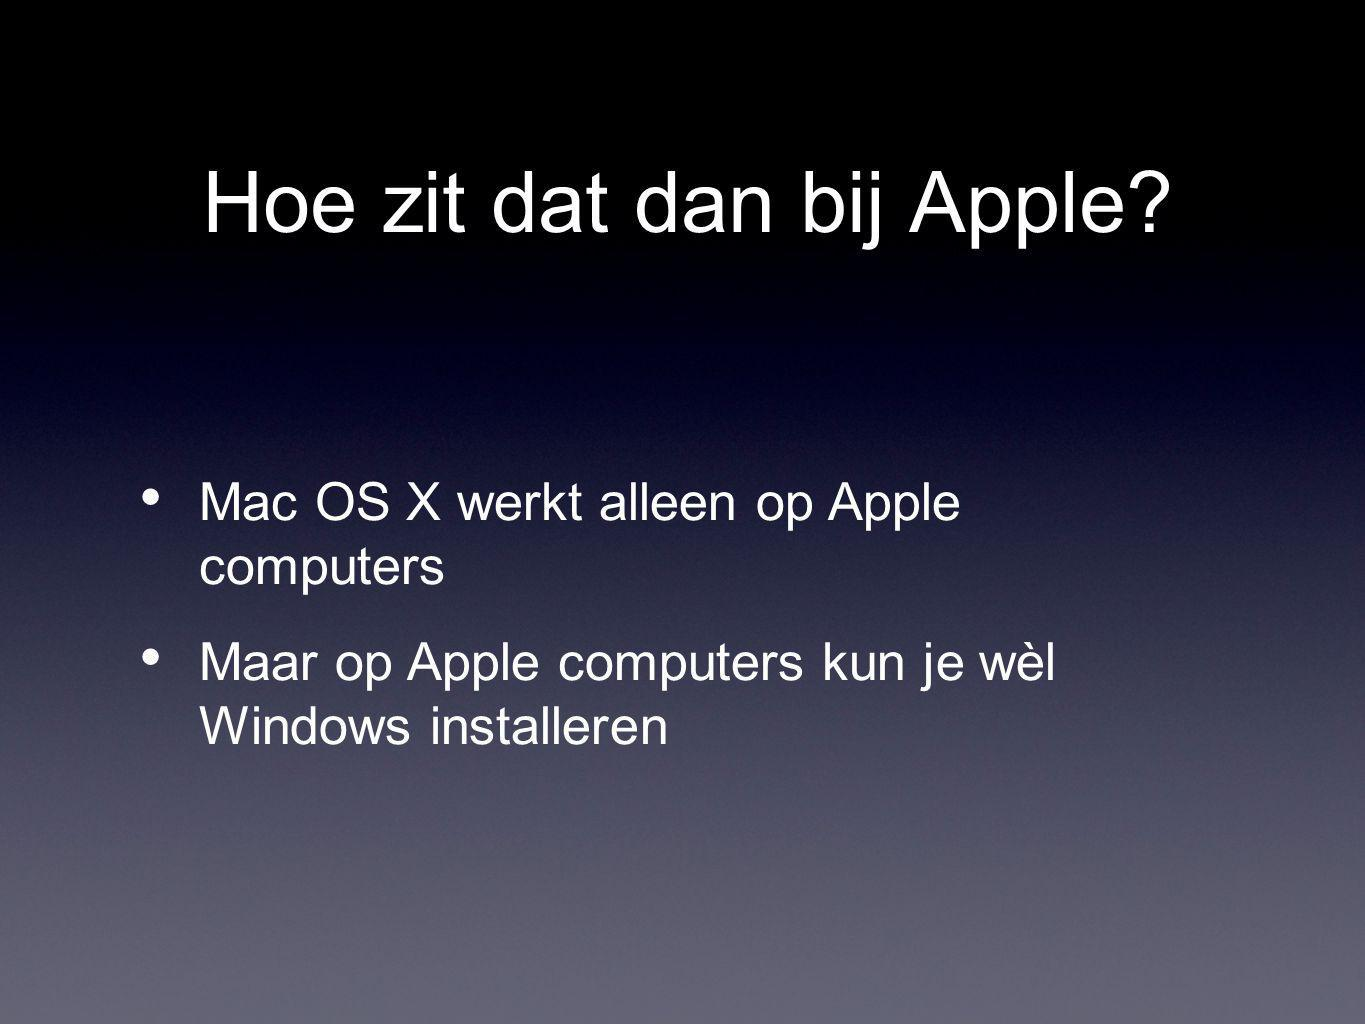 Hoe zit dat dan bij Apple? Mac OS X werkt alleen op Apple computers Maar op Apple computers kun je wèl Windows installeren